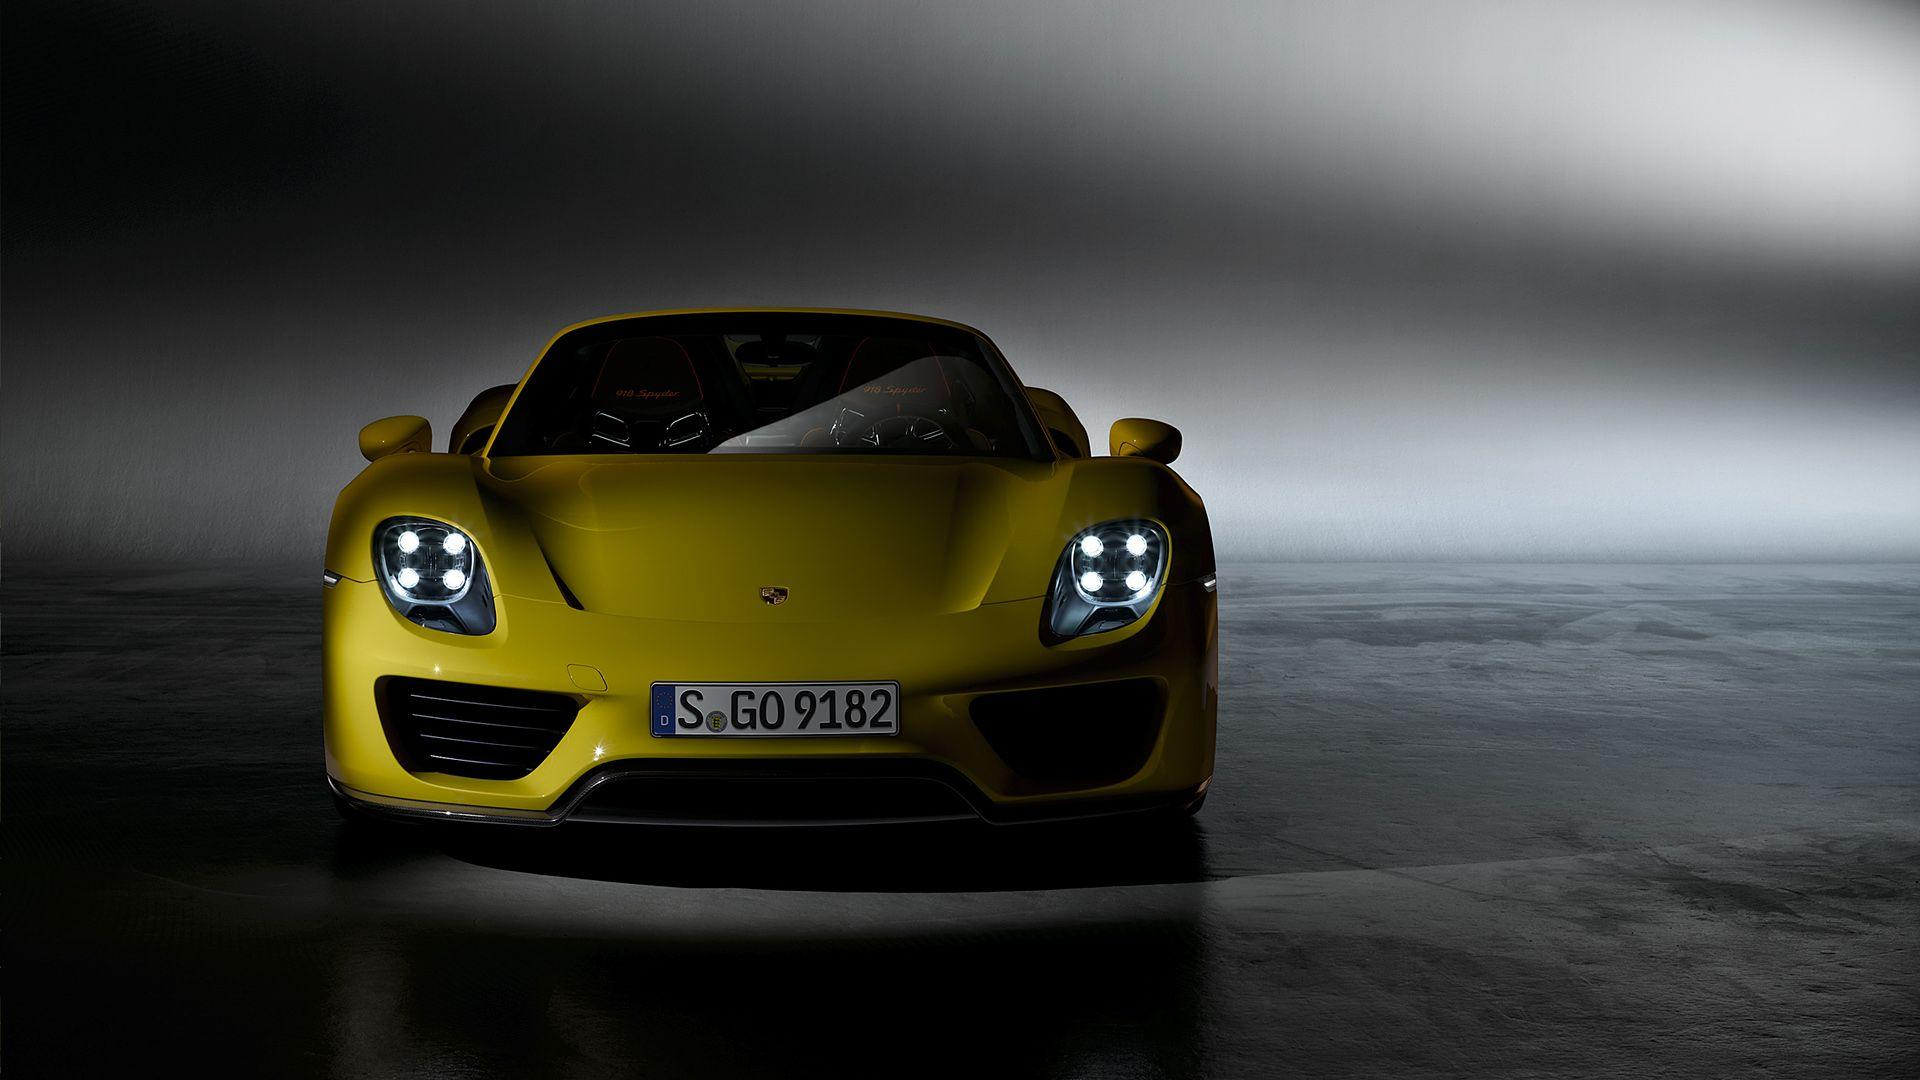 2015 Porsche 918 Spyder Wallpapers & HD Image